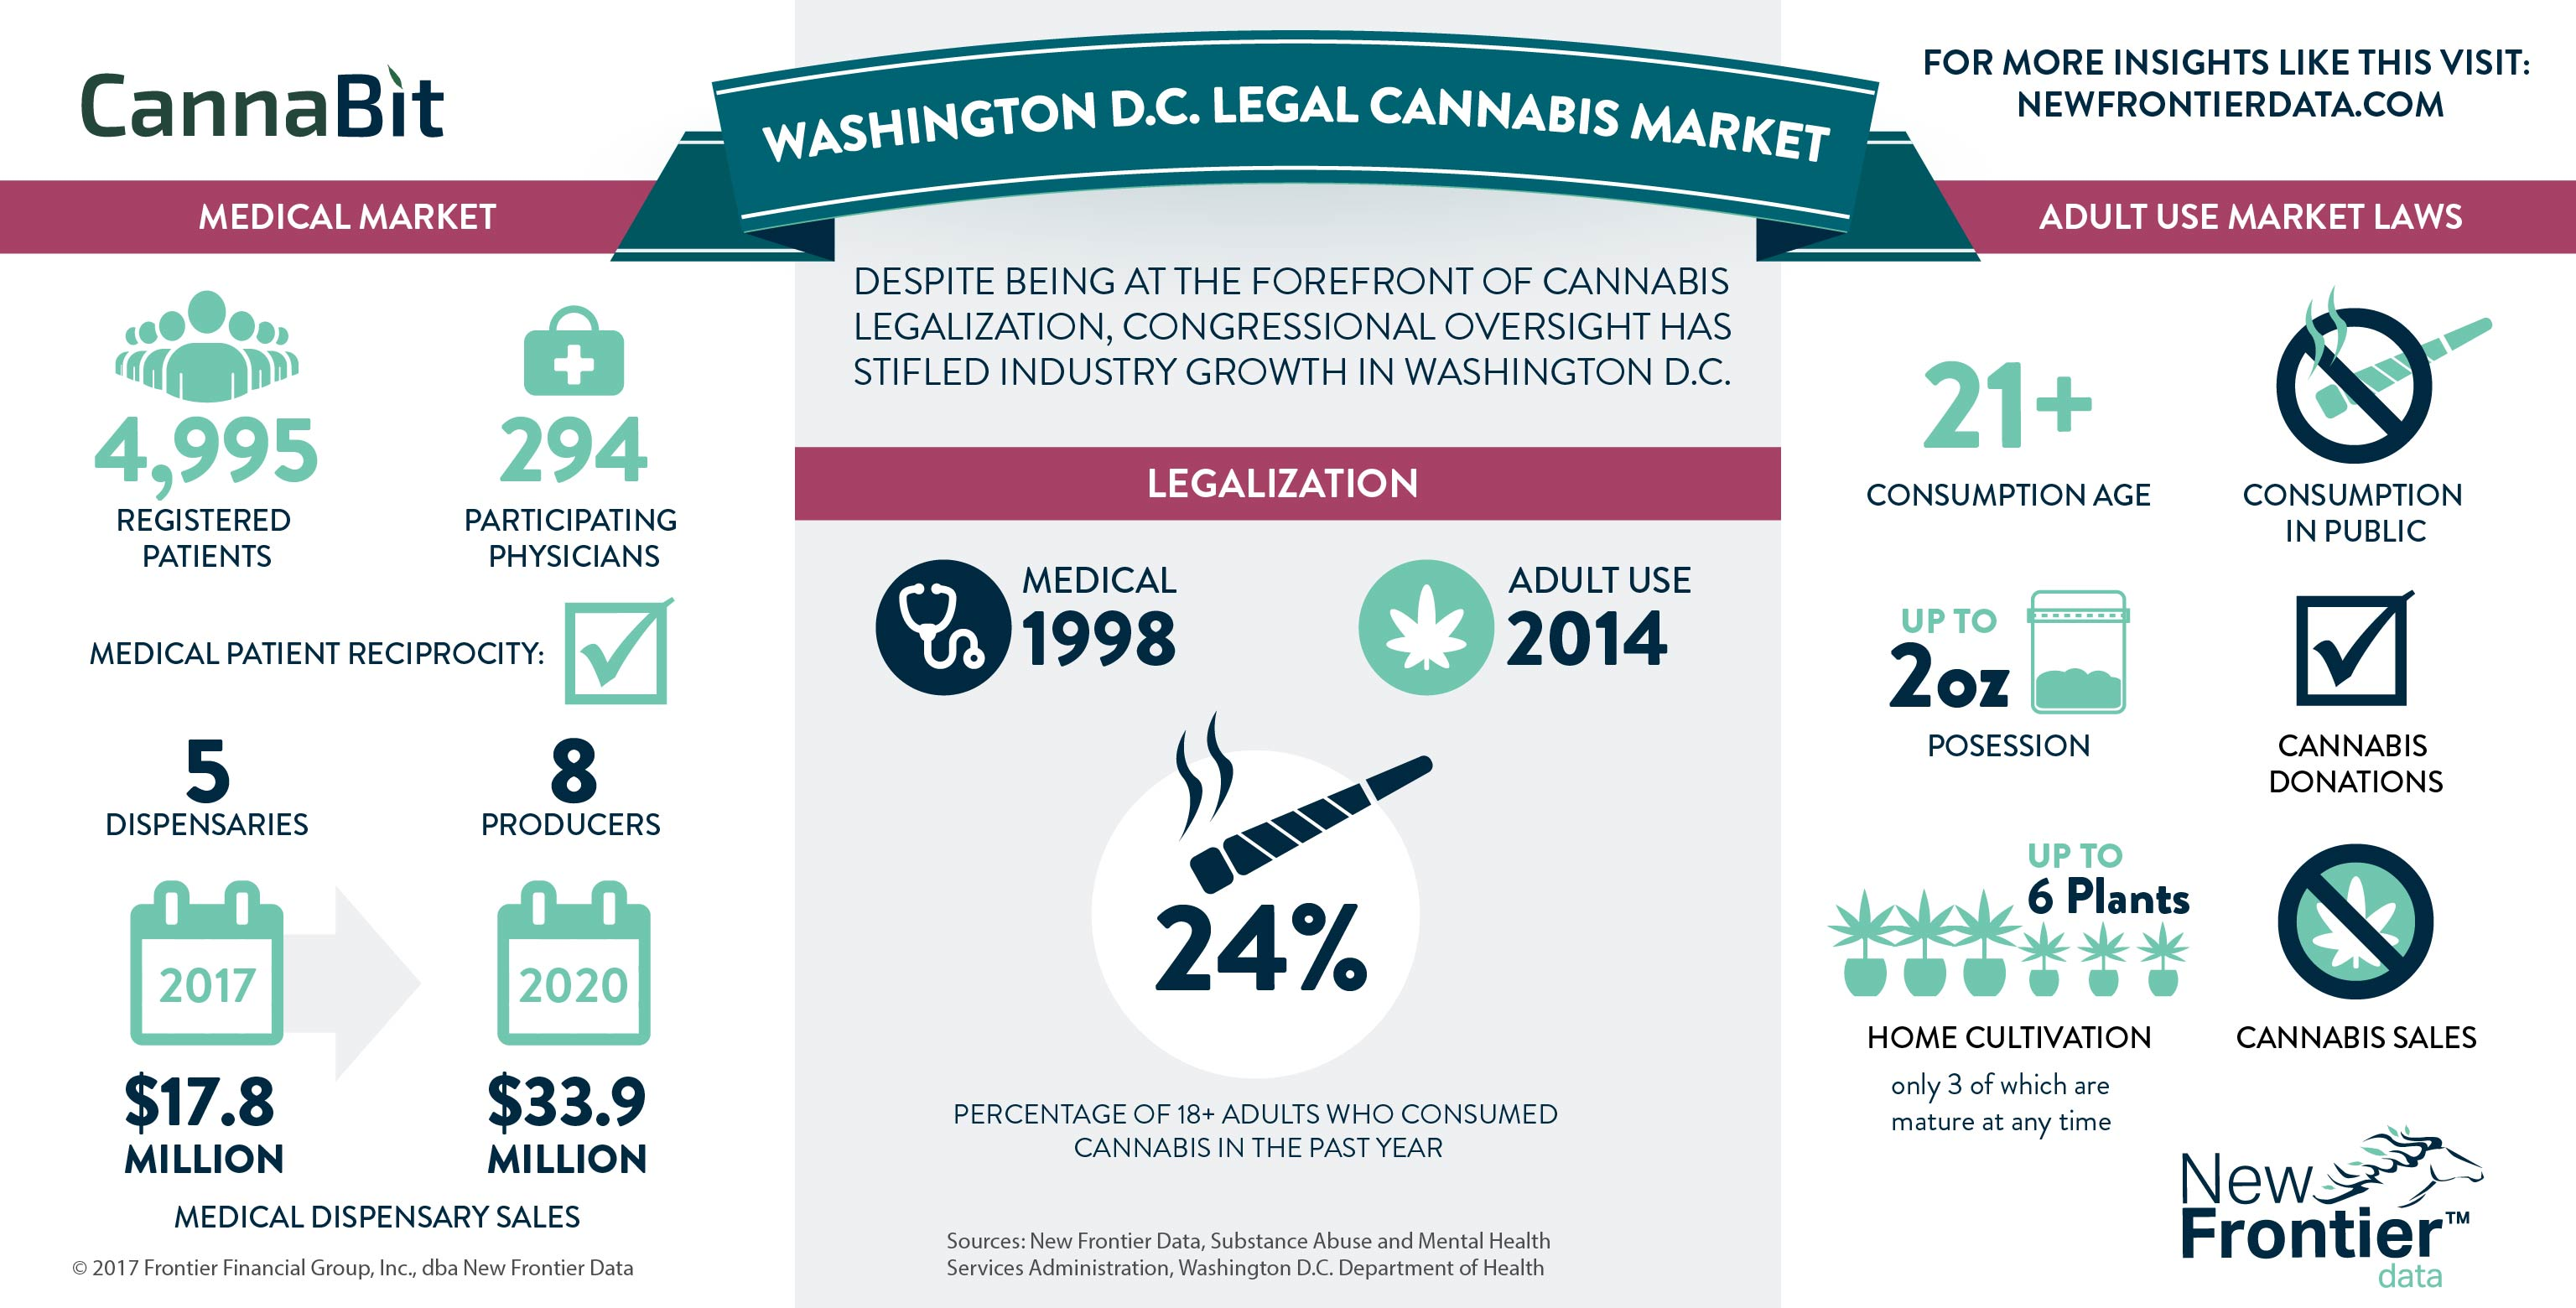 Cannabit: Washington D.C. Cannabis Market/ 05132017